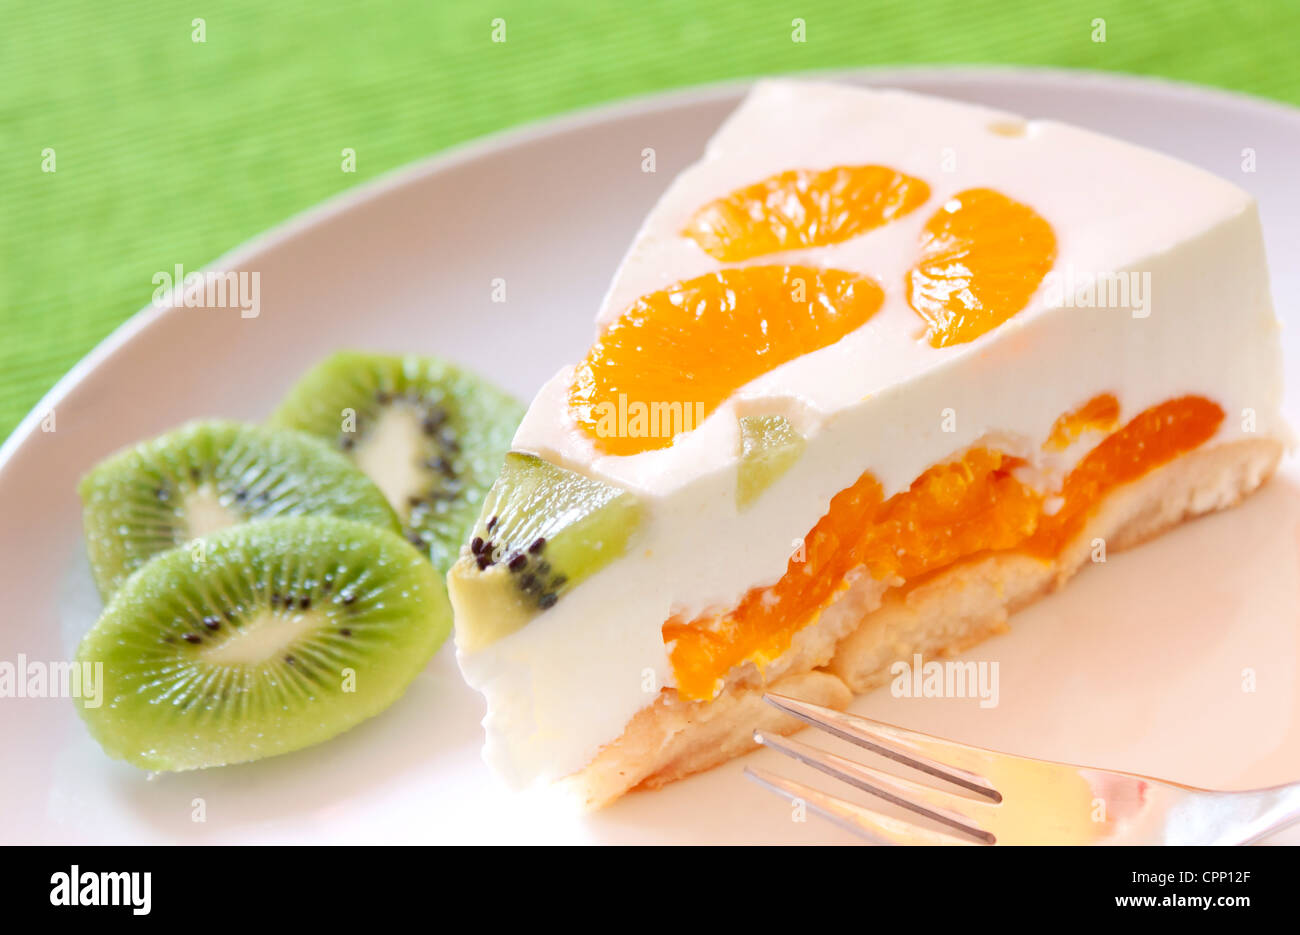 A delicious cake with clementine and kiwi on a bed of biscuits - Stock Image